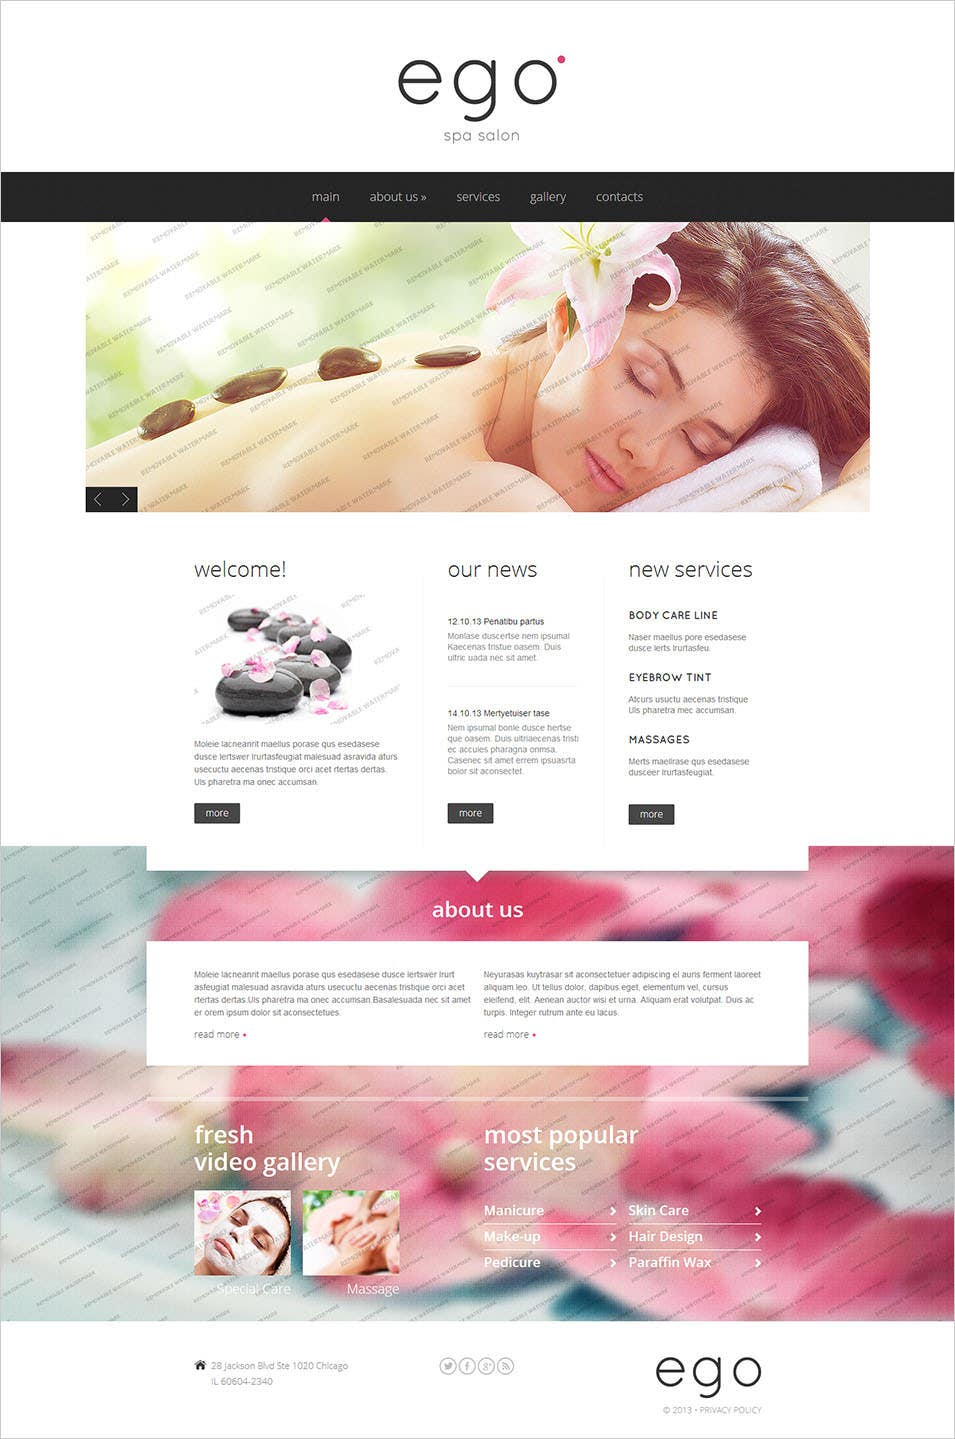 Excellent 010 Editor Templates Tiny 1300 Resume Government Samples Selection Criteria Rectangular 18th Birthday Invitation Templates 1st Job Resume Template Young 2014 Printable Calendar Template Soft24 Hour Timeline Template 20  Beauty Salon Website Templates | Free \u0026 Premium Templates